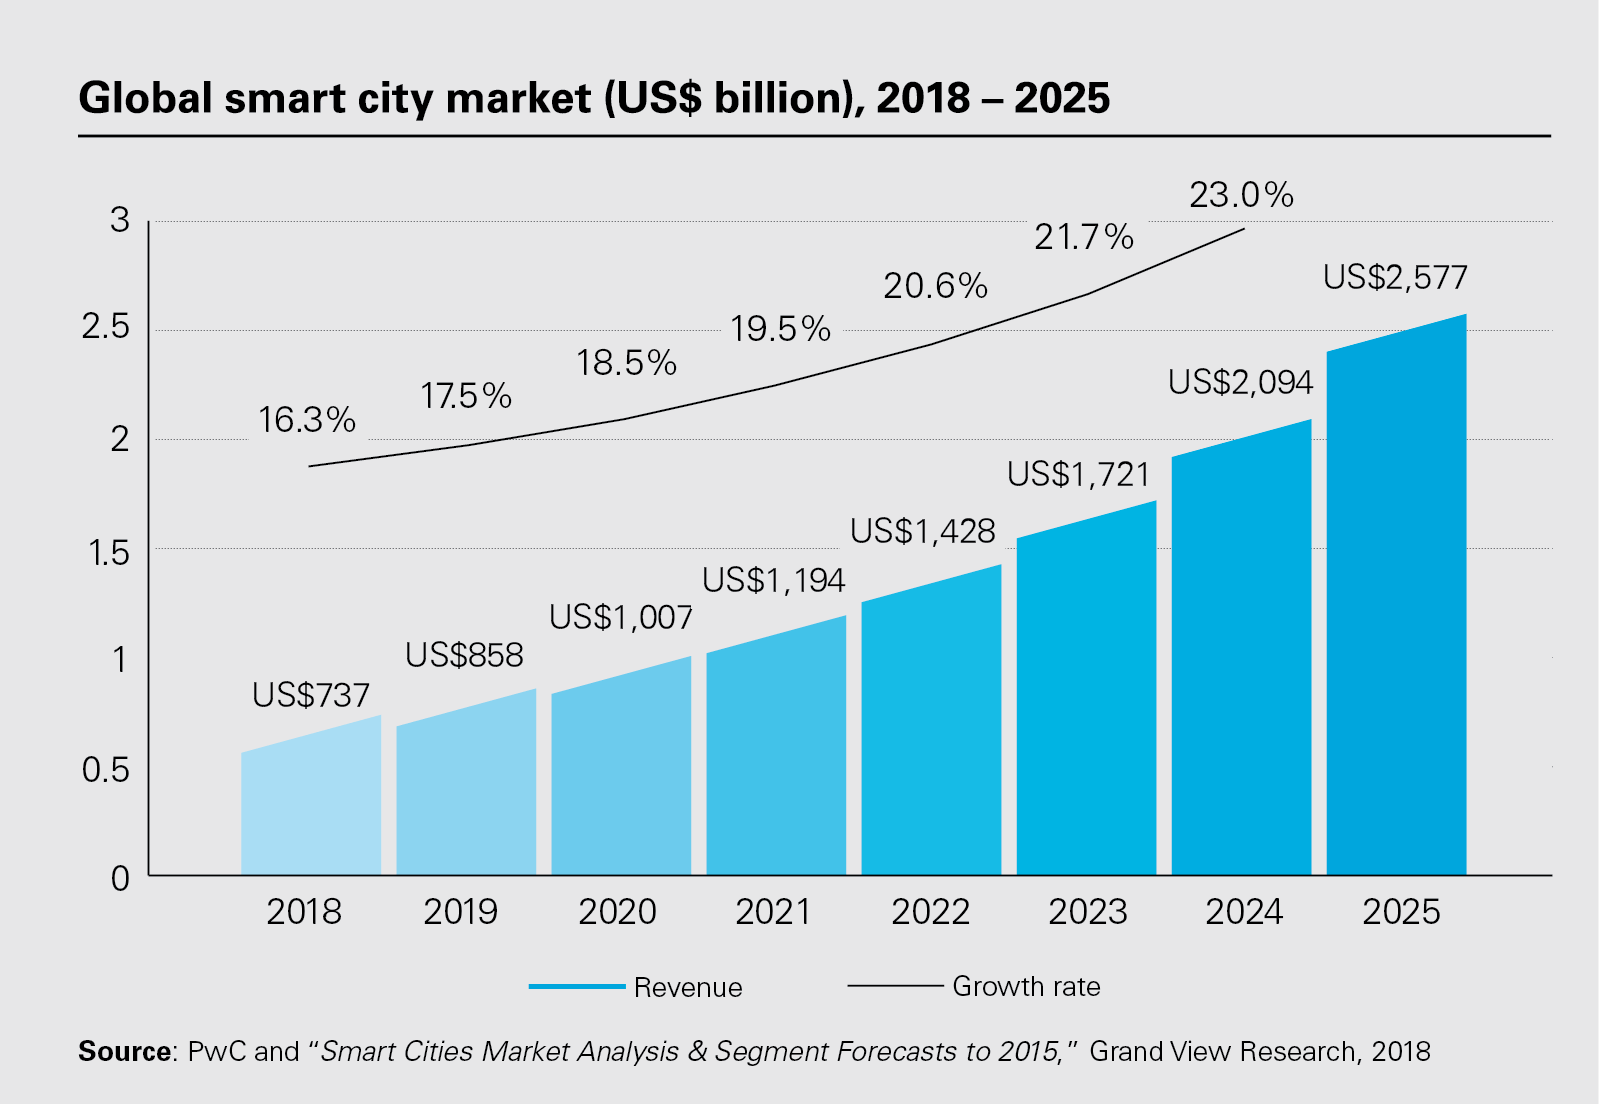 Global smart city market (US$ billion), 2018 - 2025